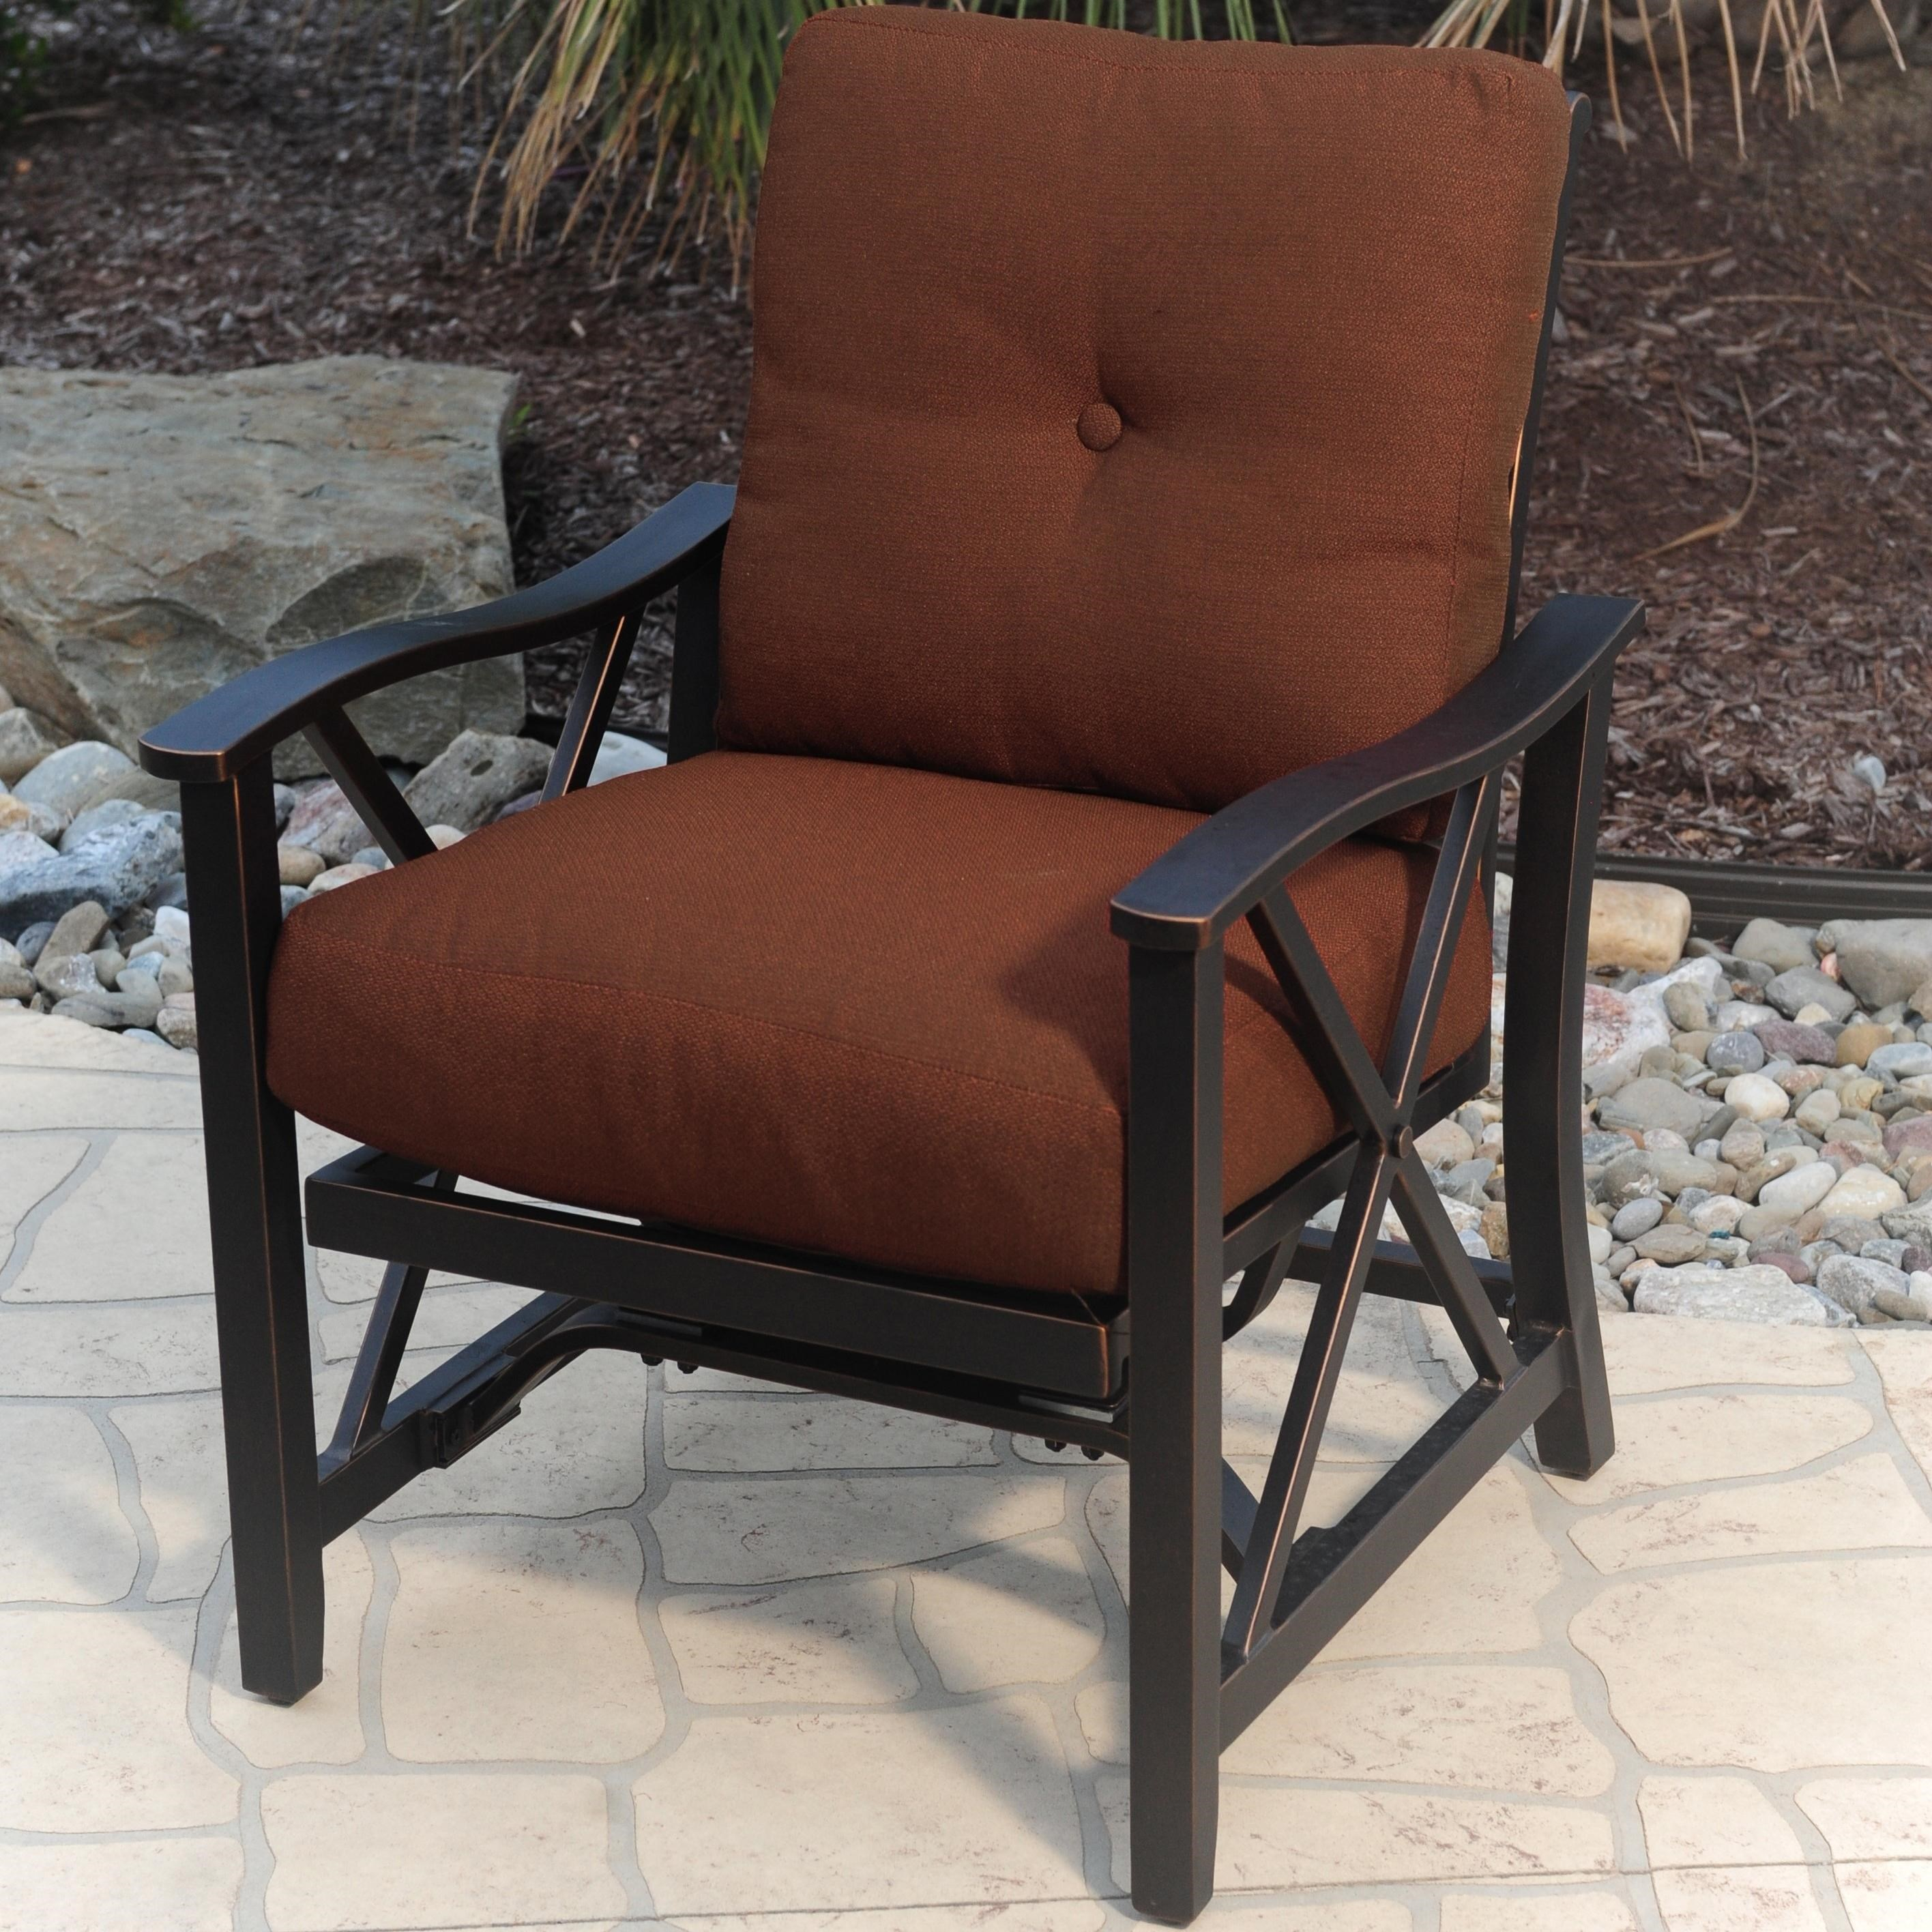 outdoor upholstered furniture. Agio HaywoodOutdoor Upholstered Chair Outdoor Furniture O